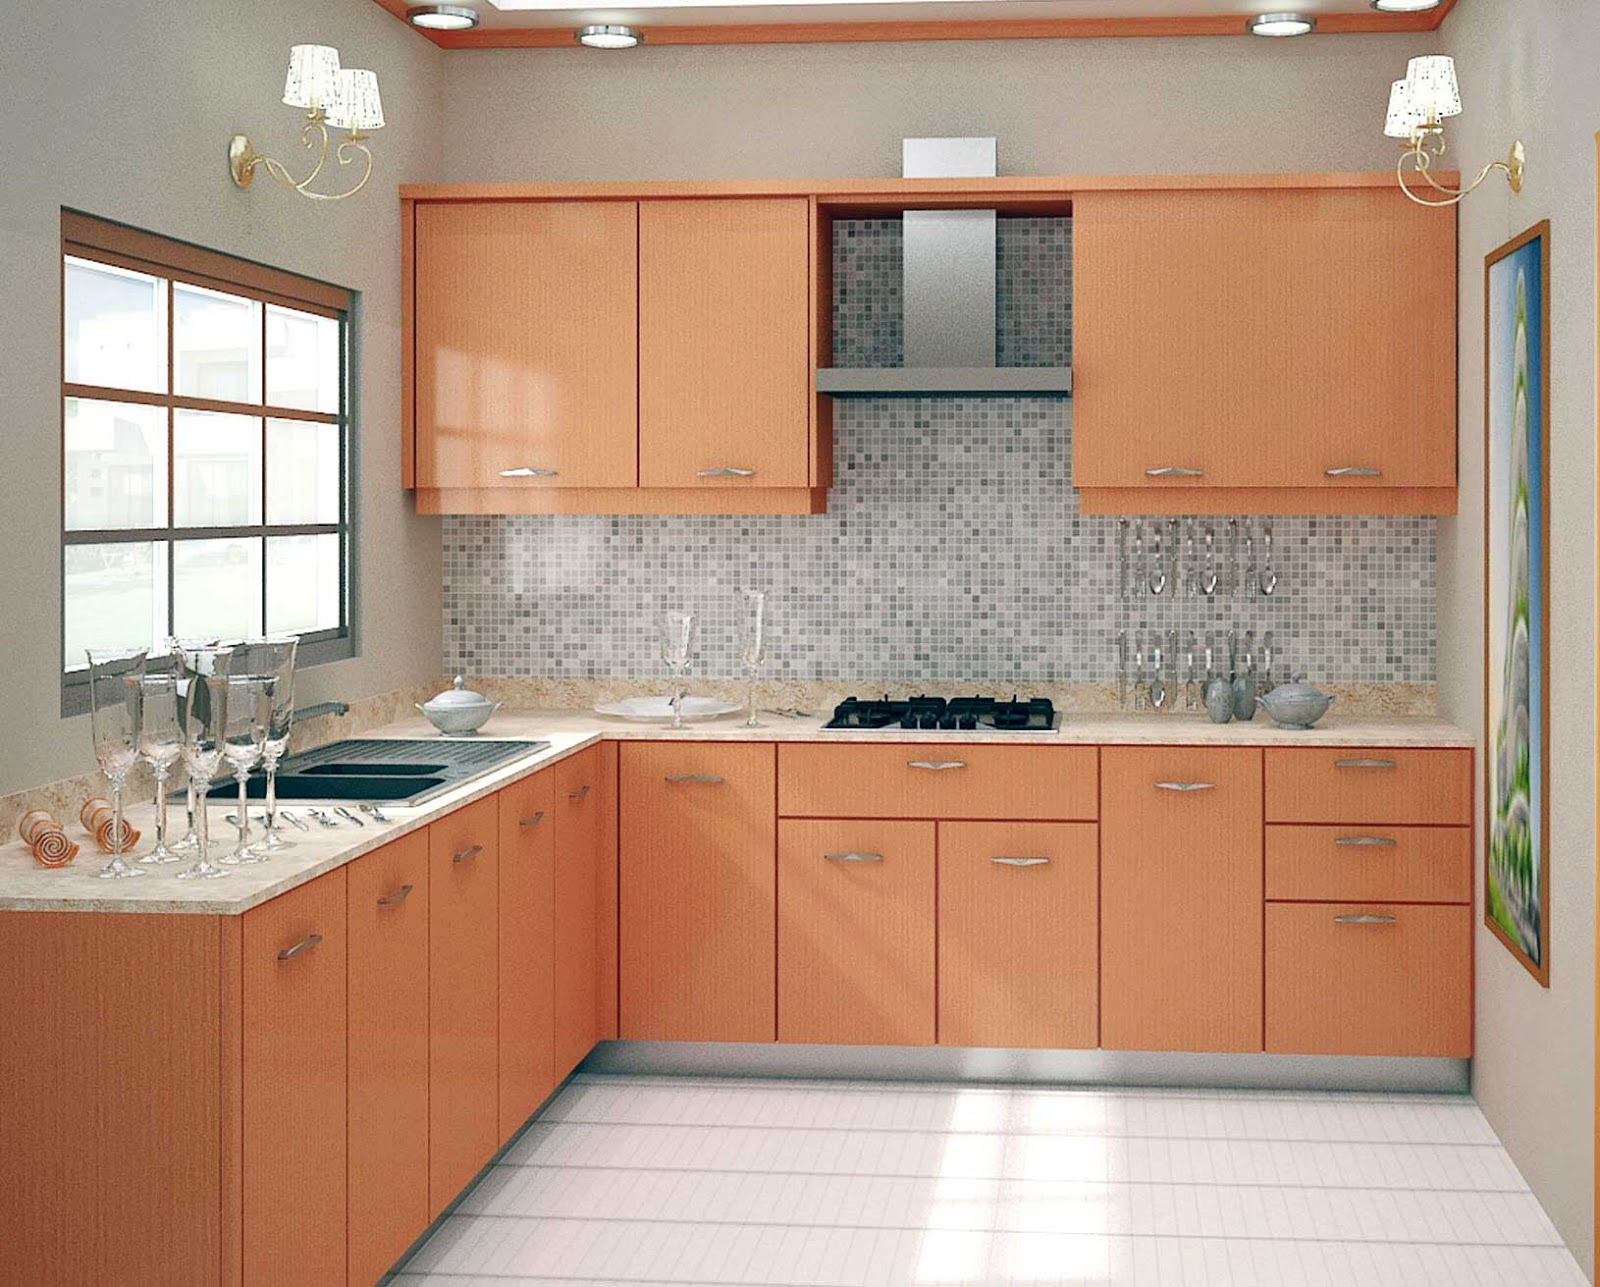 Small kitchen design kuala lumpur cabinet malaysia ideas kitchen design amp renovation cabinet - Cabinets for small kitchens designs ...